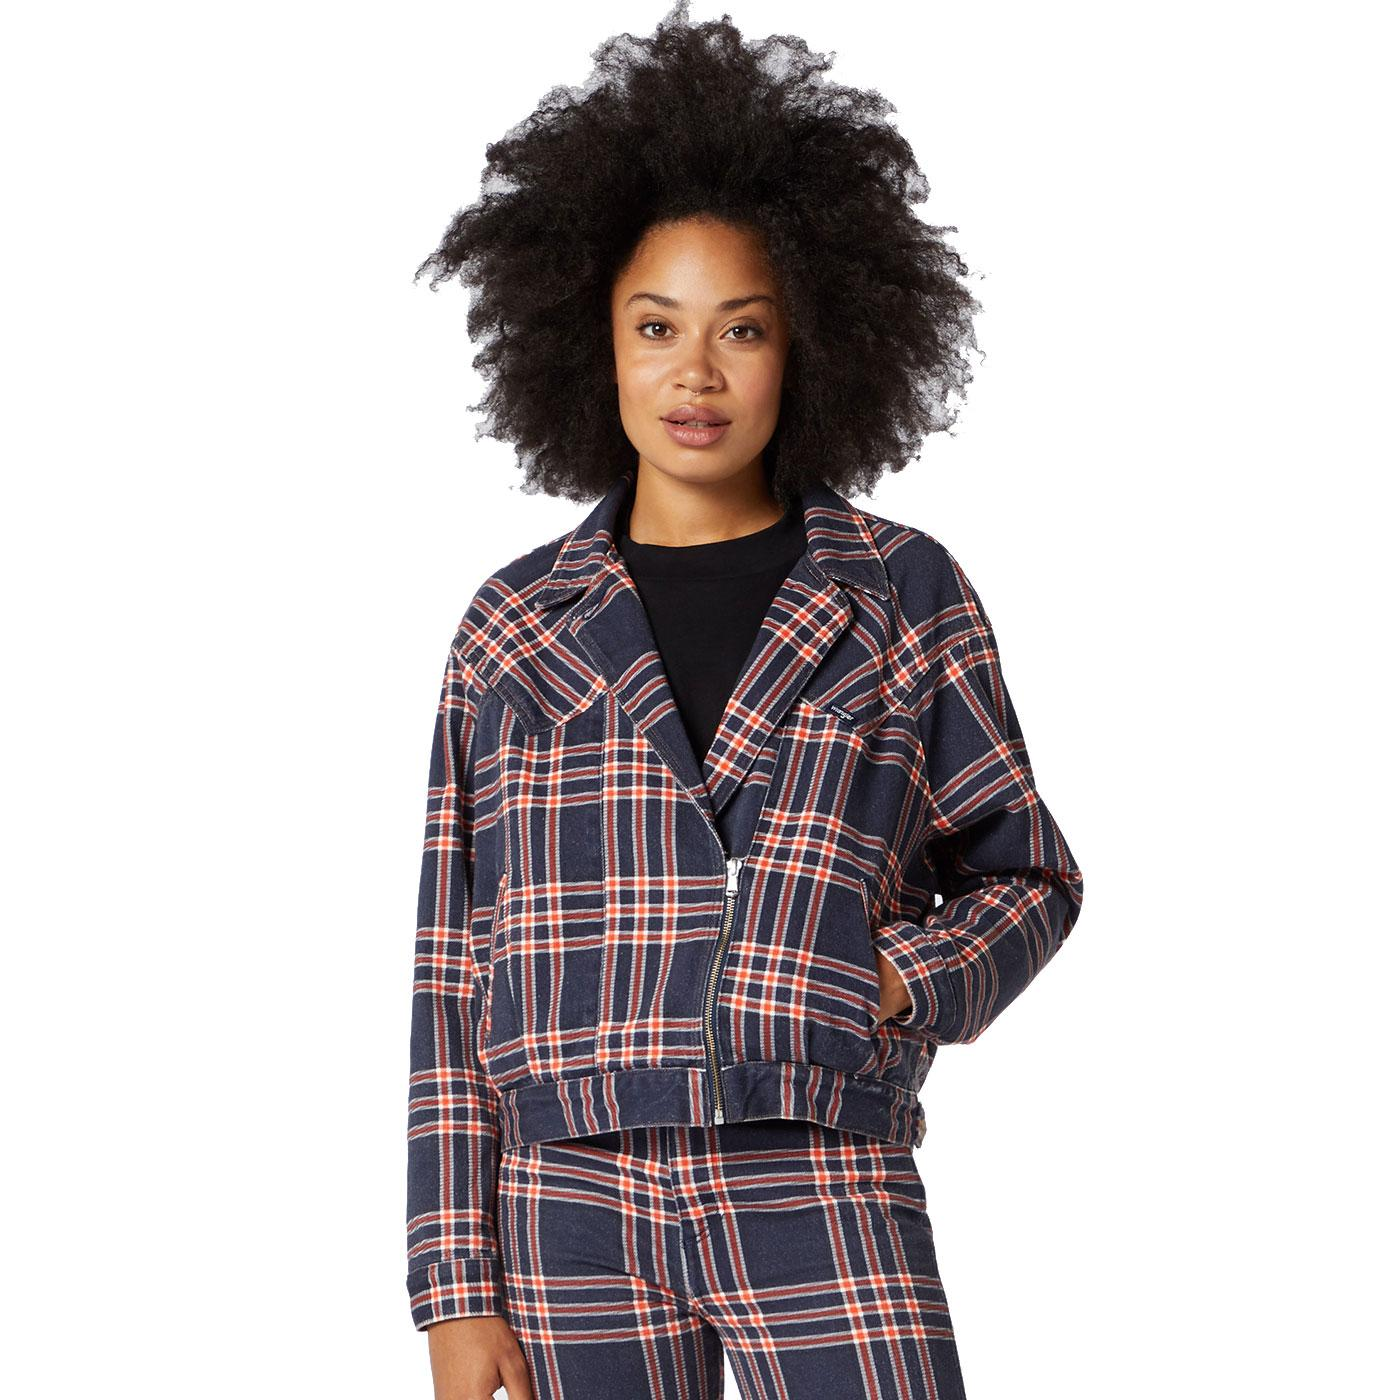 WRANGLER Women's Retro 80s Plaid Denim Jacket